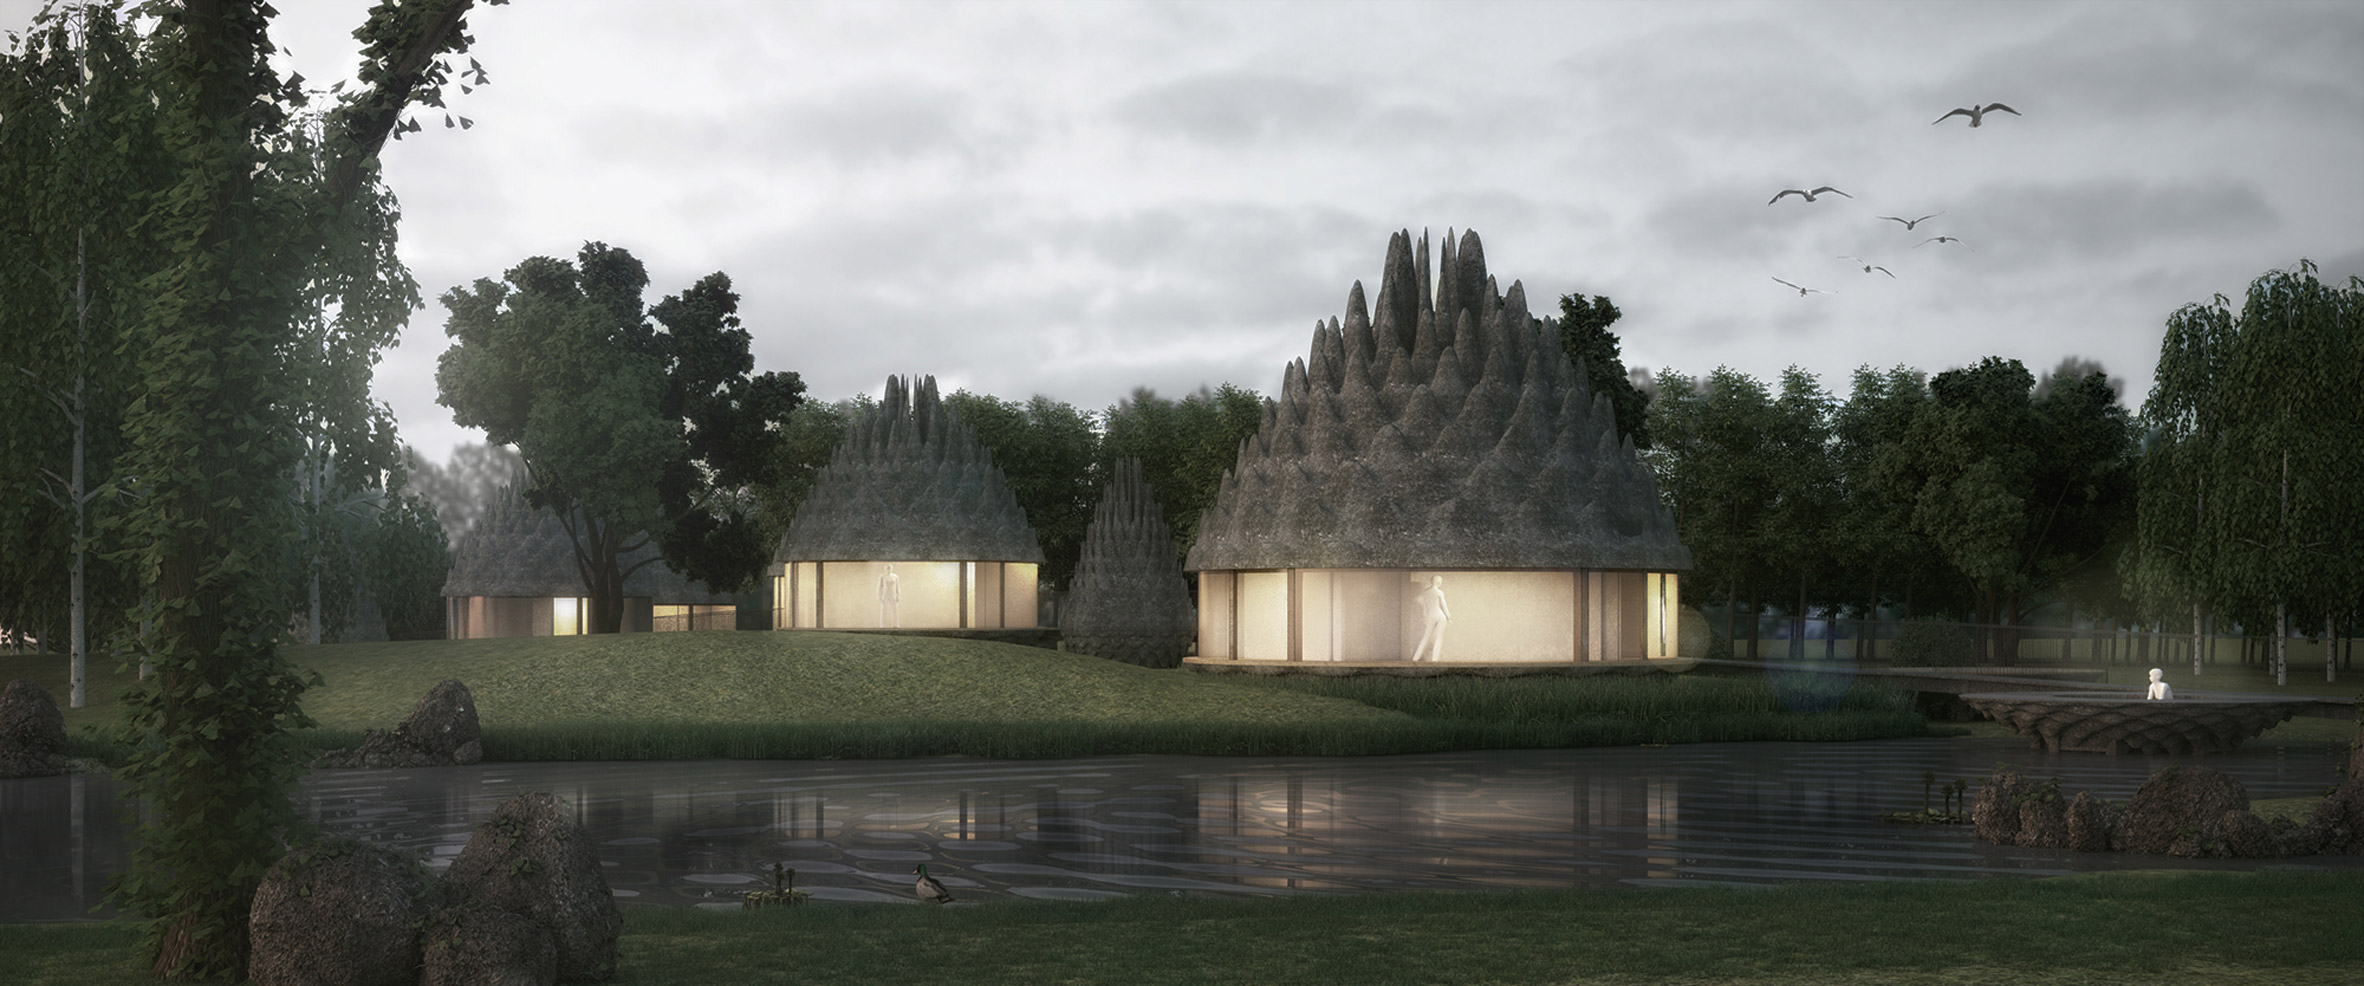 Inflatable pine cones top guesthouses and spa envisioned by 3Gatti Architecture Studio